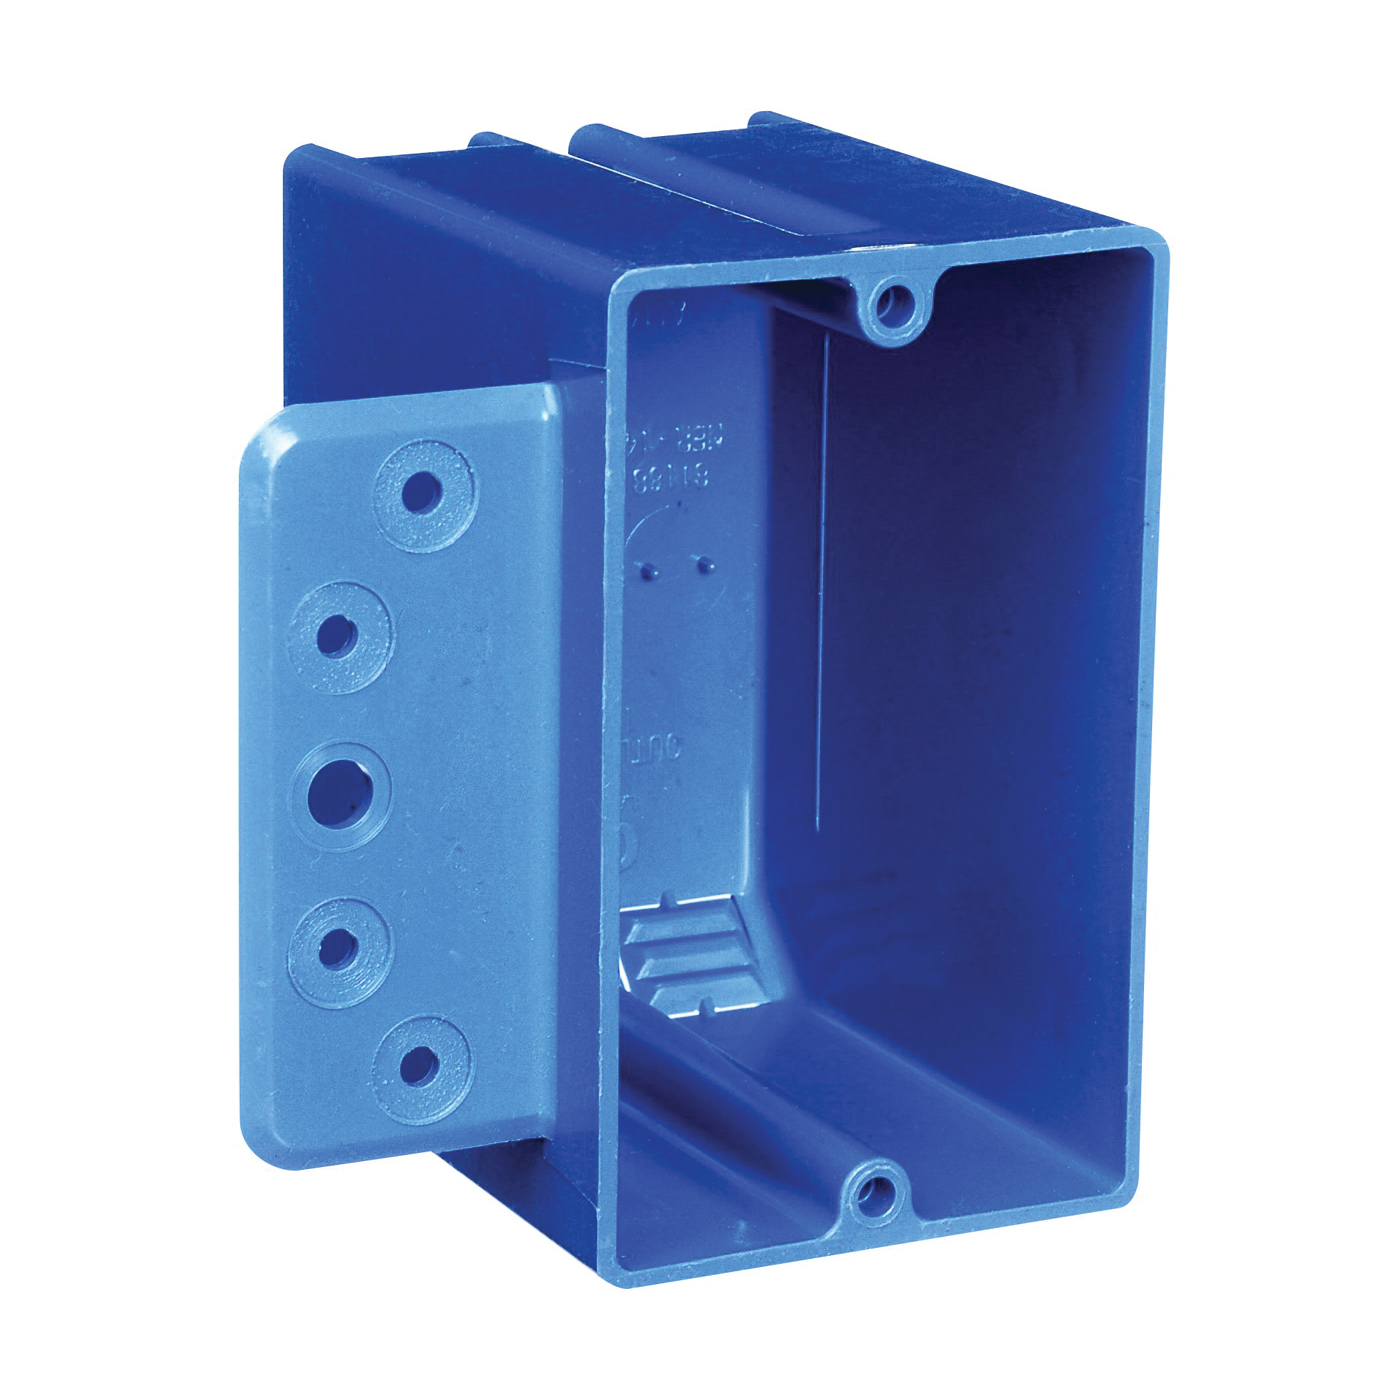 Picture of Carlon B118B-UPC Outlet Box with Bracket, 1-Gang, 4-Knockout, PVC, Blue, Bracket, Stud Mounting